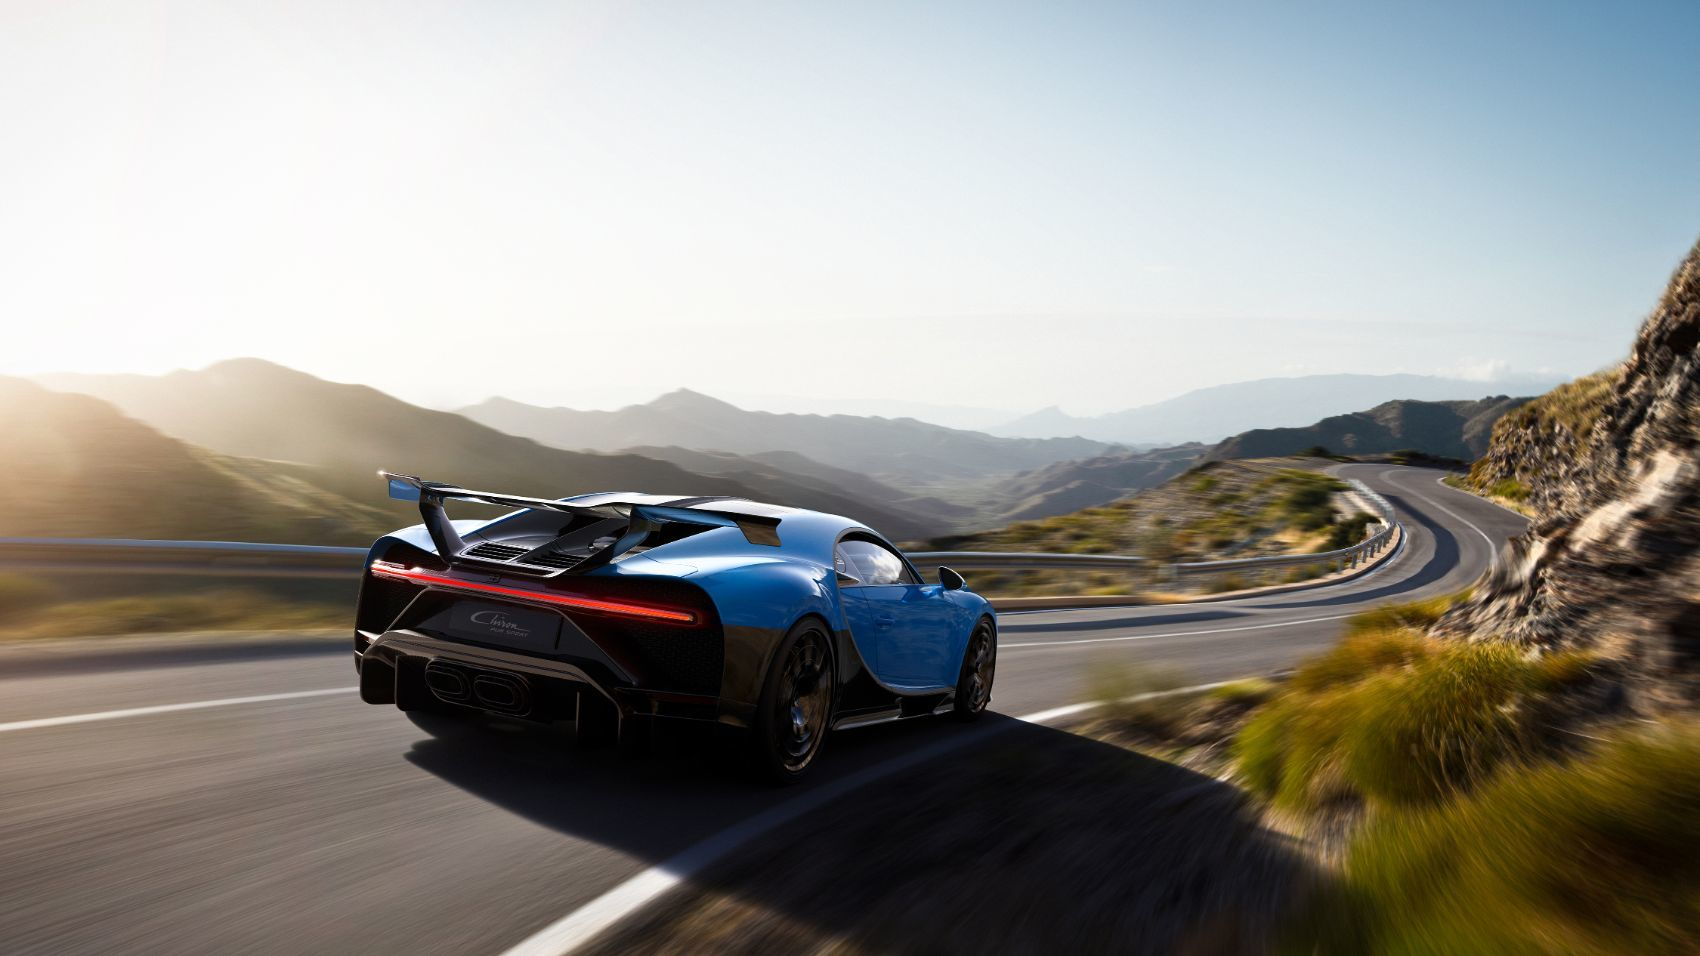 Bugatti Chiron Pur Sport: When Less Is More & 16 Is The Magic Number 15